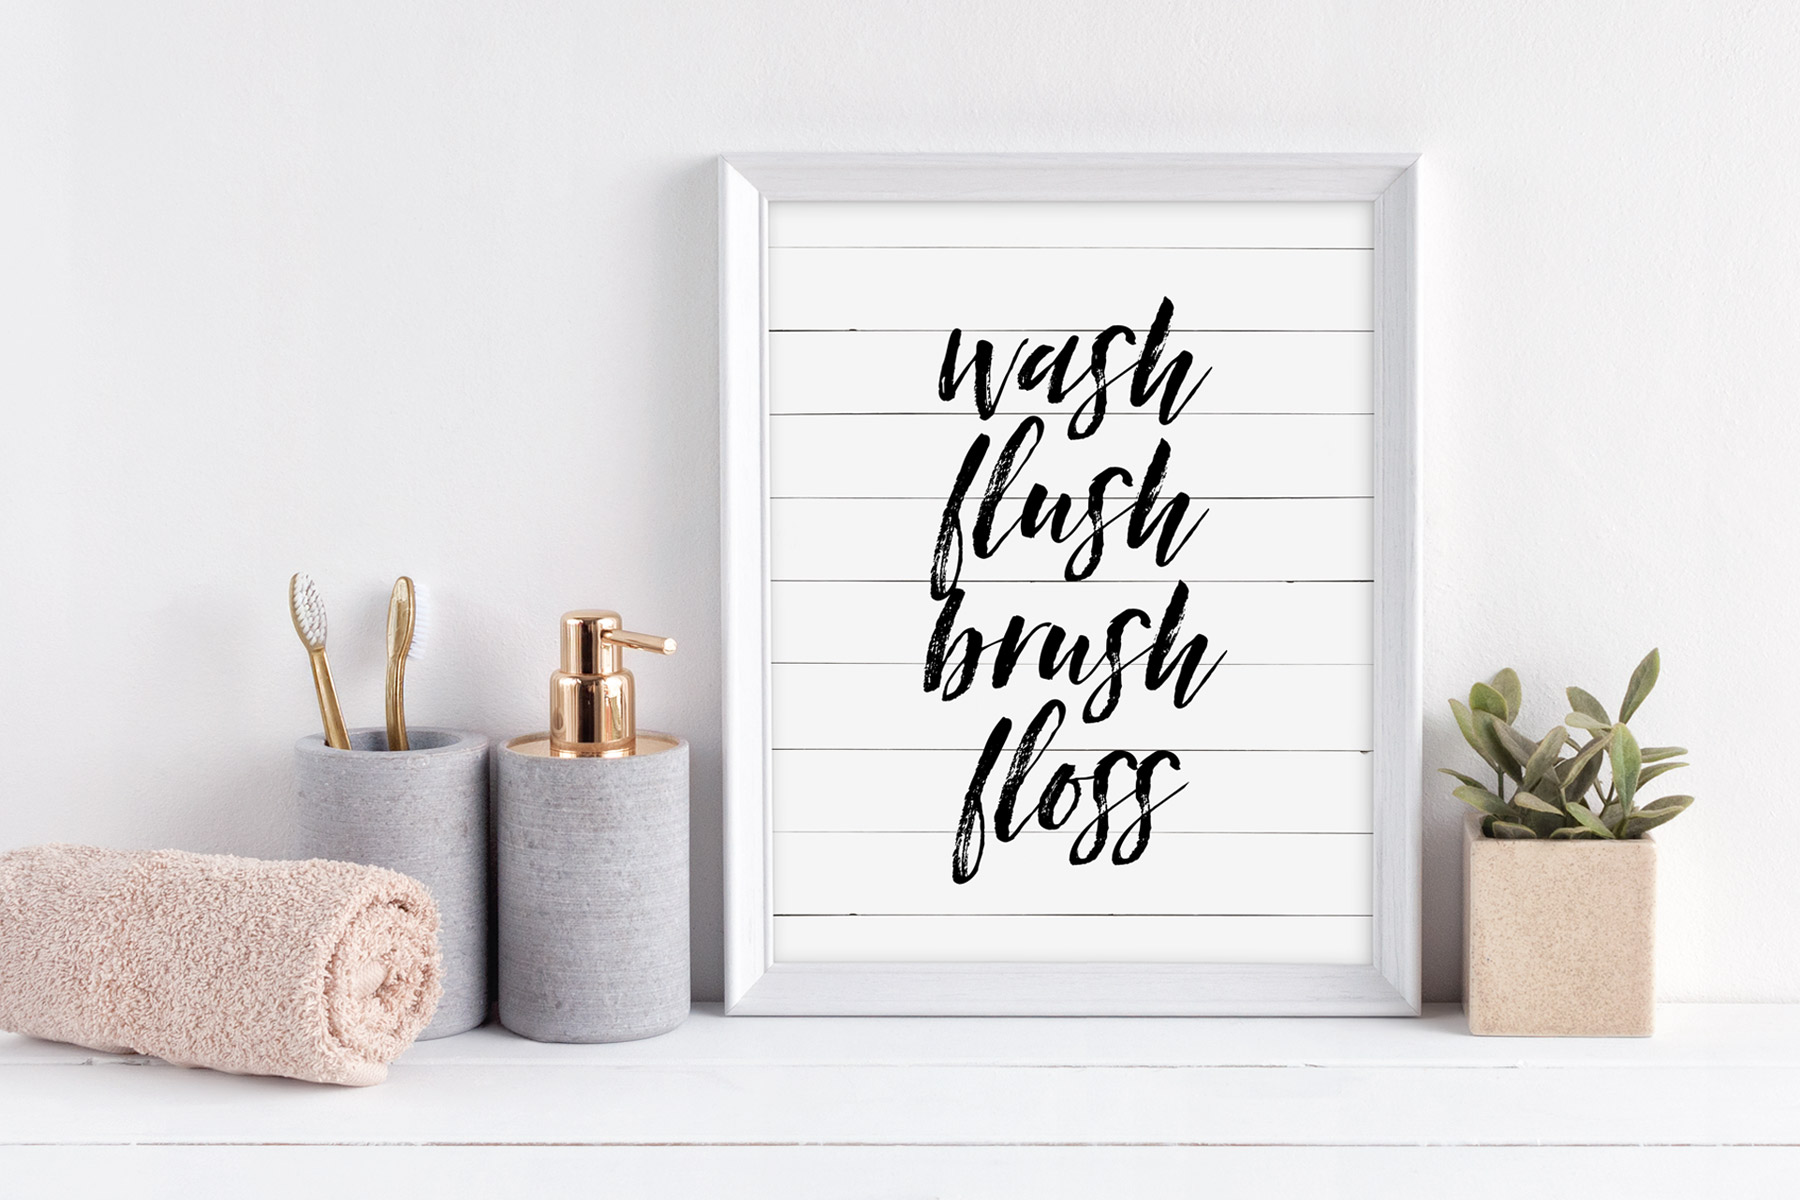 picture regarding Wash Brush Floss Flush Free Printable known as 10 Absolutely free Black and White Toilet Printables - Kendra John